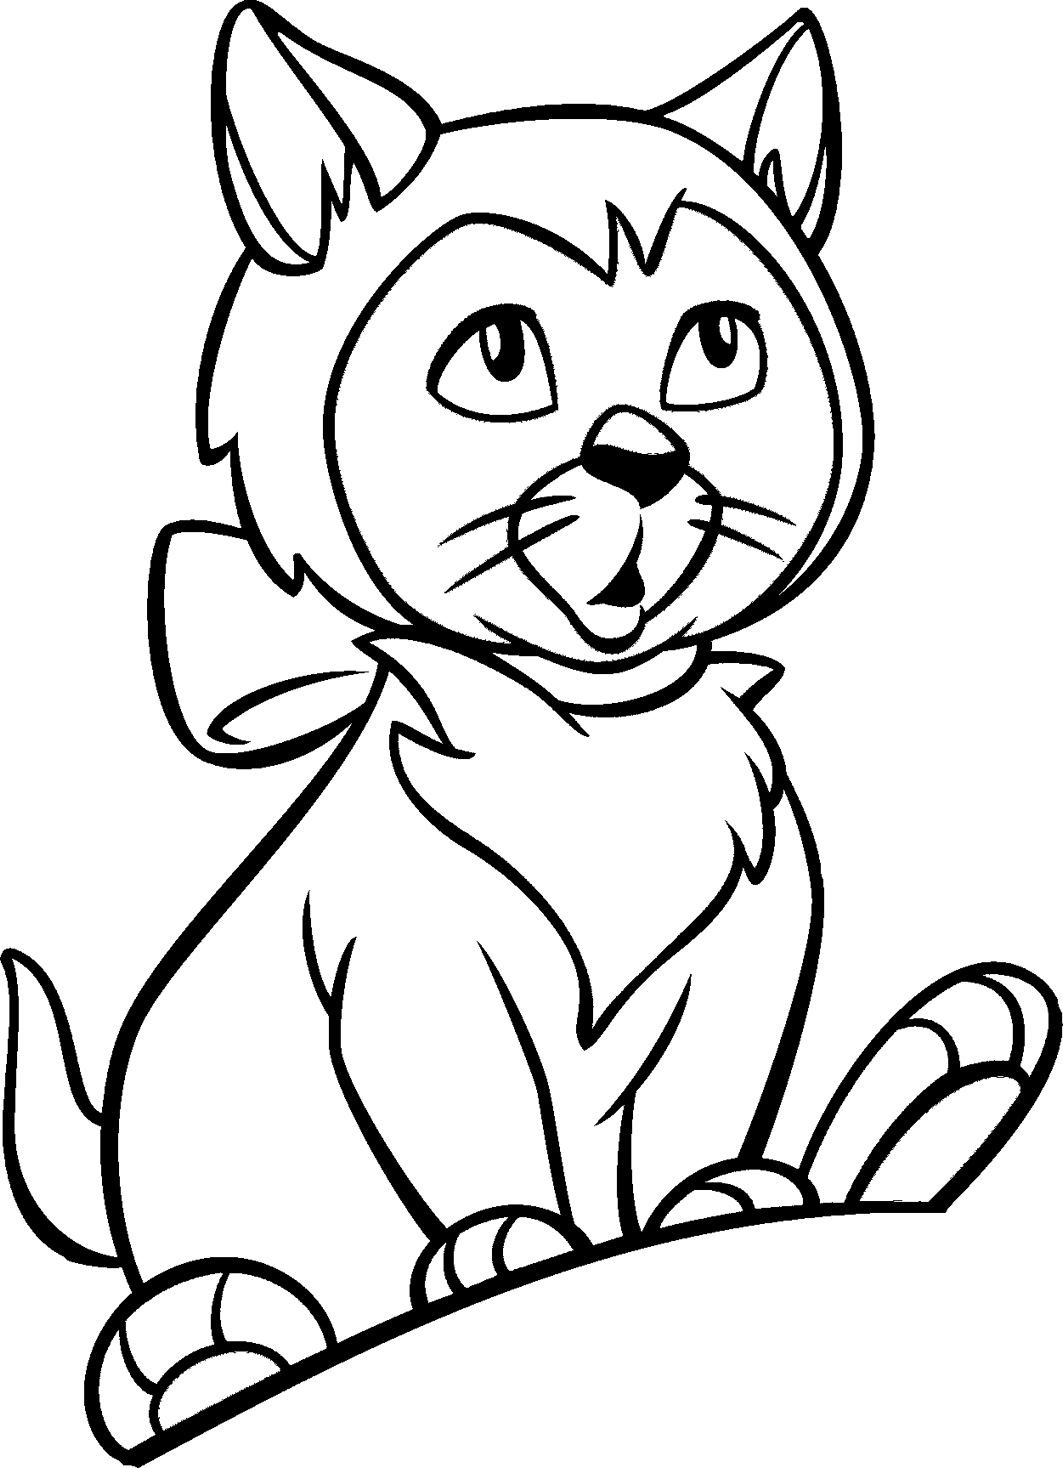 Coloring pages for kids cat coloring pages for kids for Cat coloring pages for toddlers